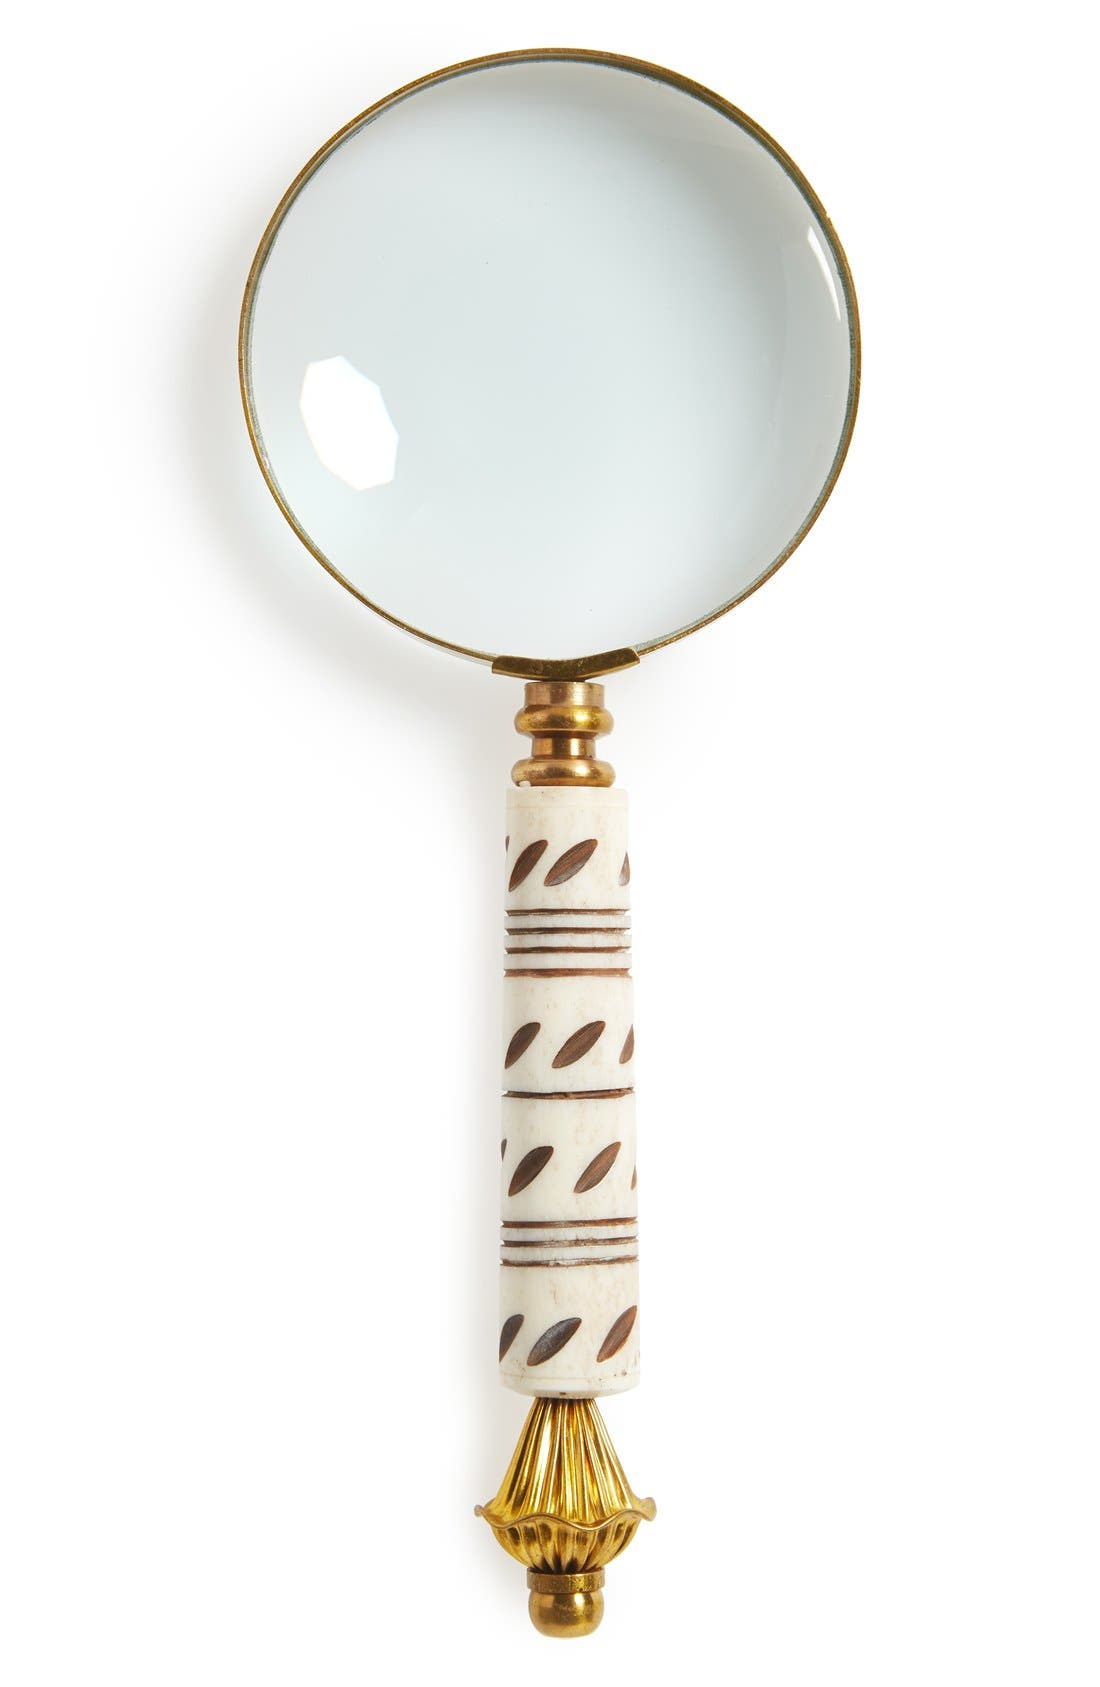 Alternate Image 1 Selected - Import Collection Brass Magnifying Glass